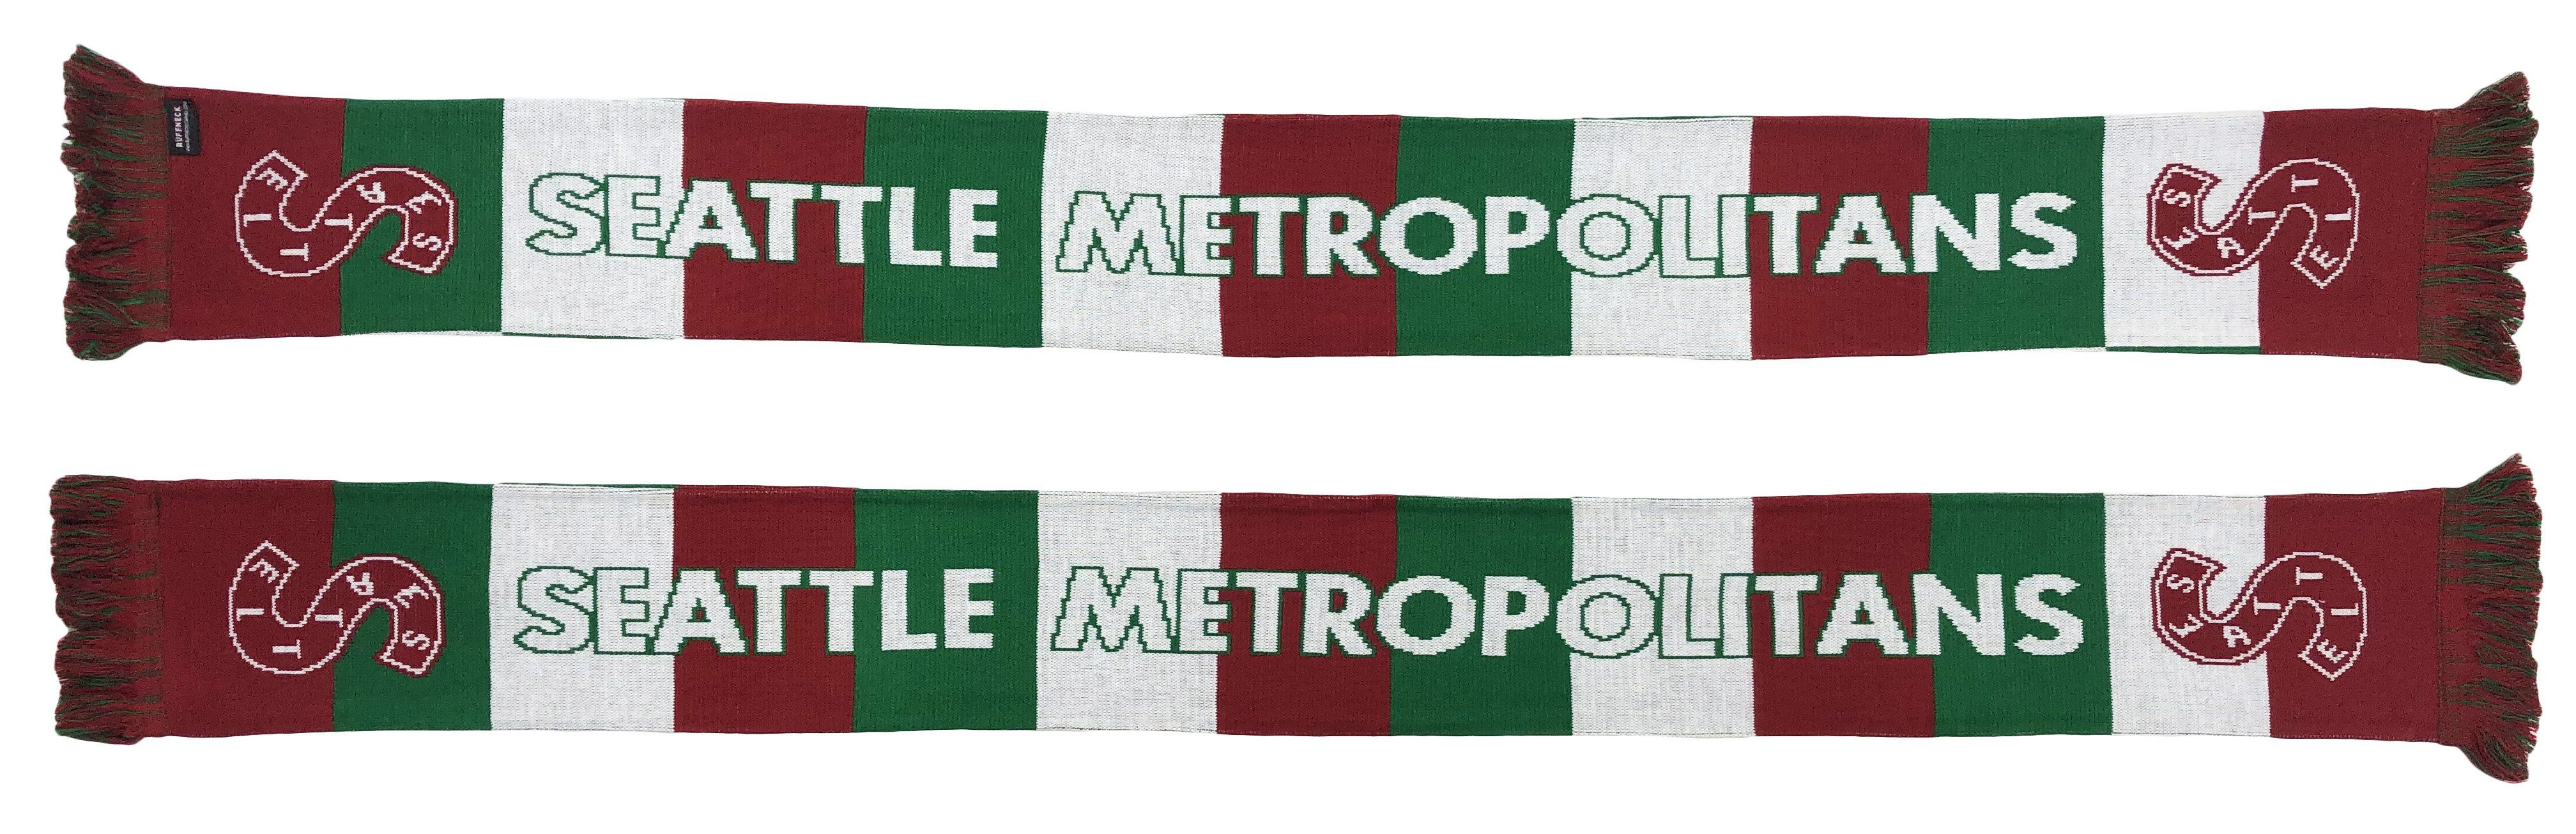 SEATTLE METROPOLITANS SCARF - Traditional Bar Scarf